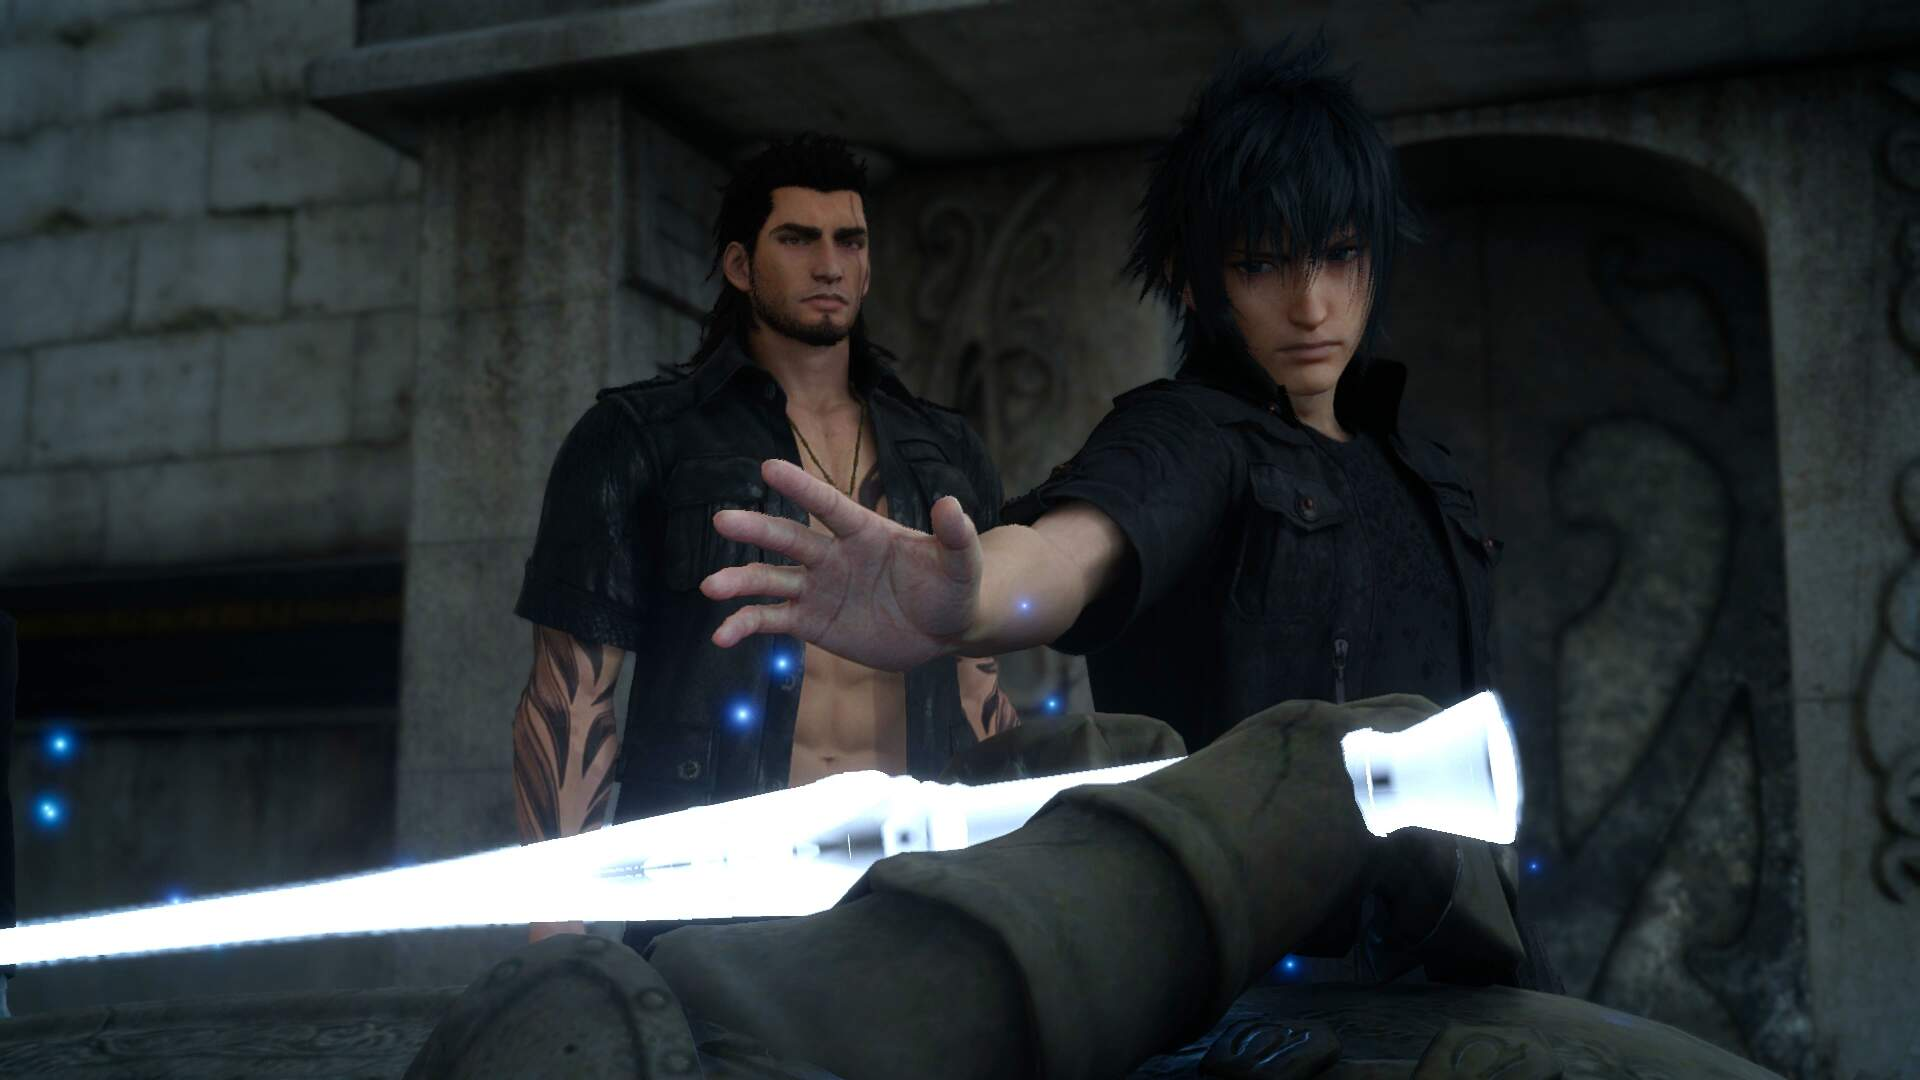 Final Fantasy 15 Royal Arms Location Guide - How to get all Royal Arms, All Tomb Locations